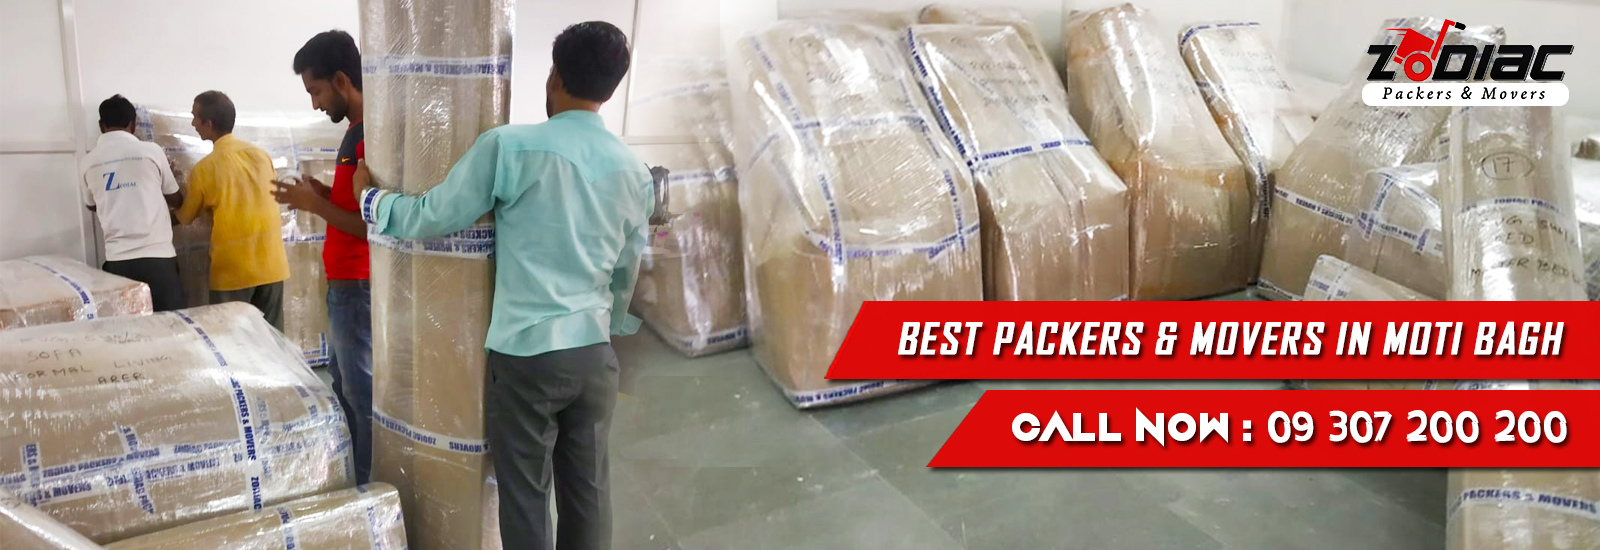 Packers and Movers in Moti Bagh